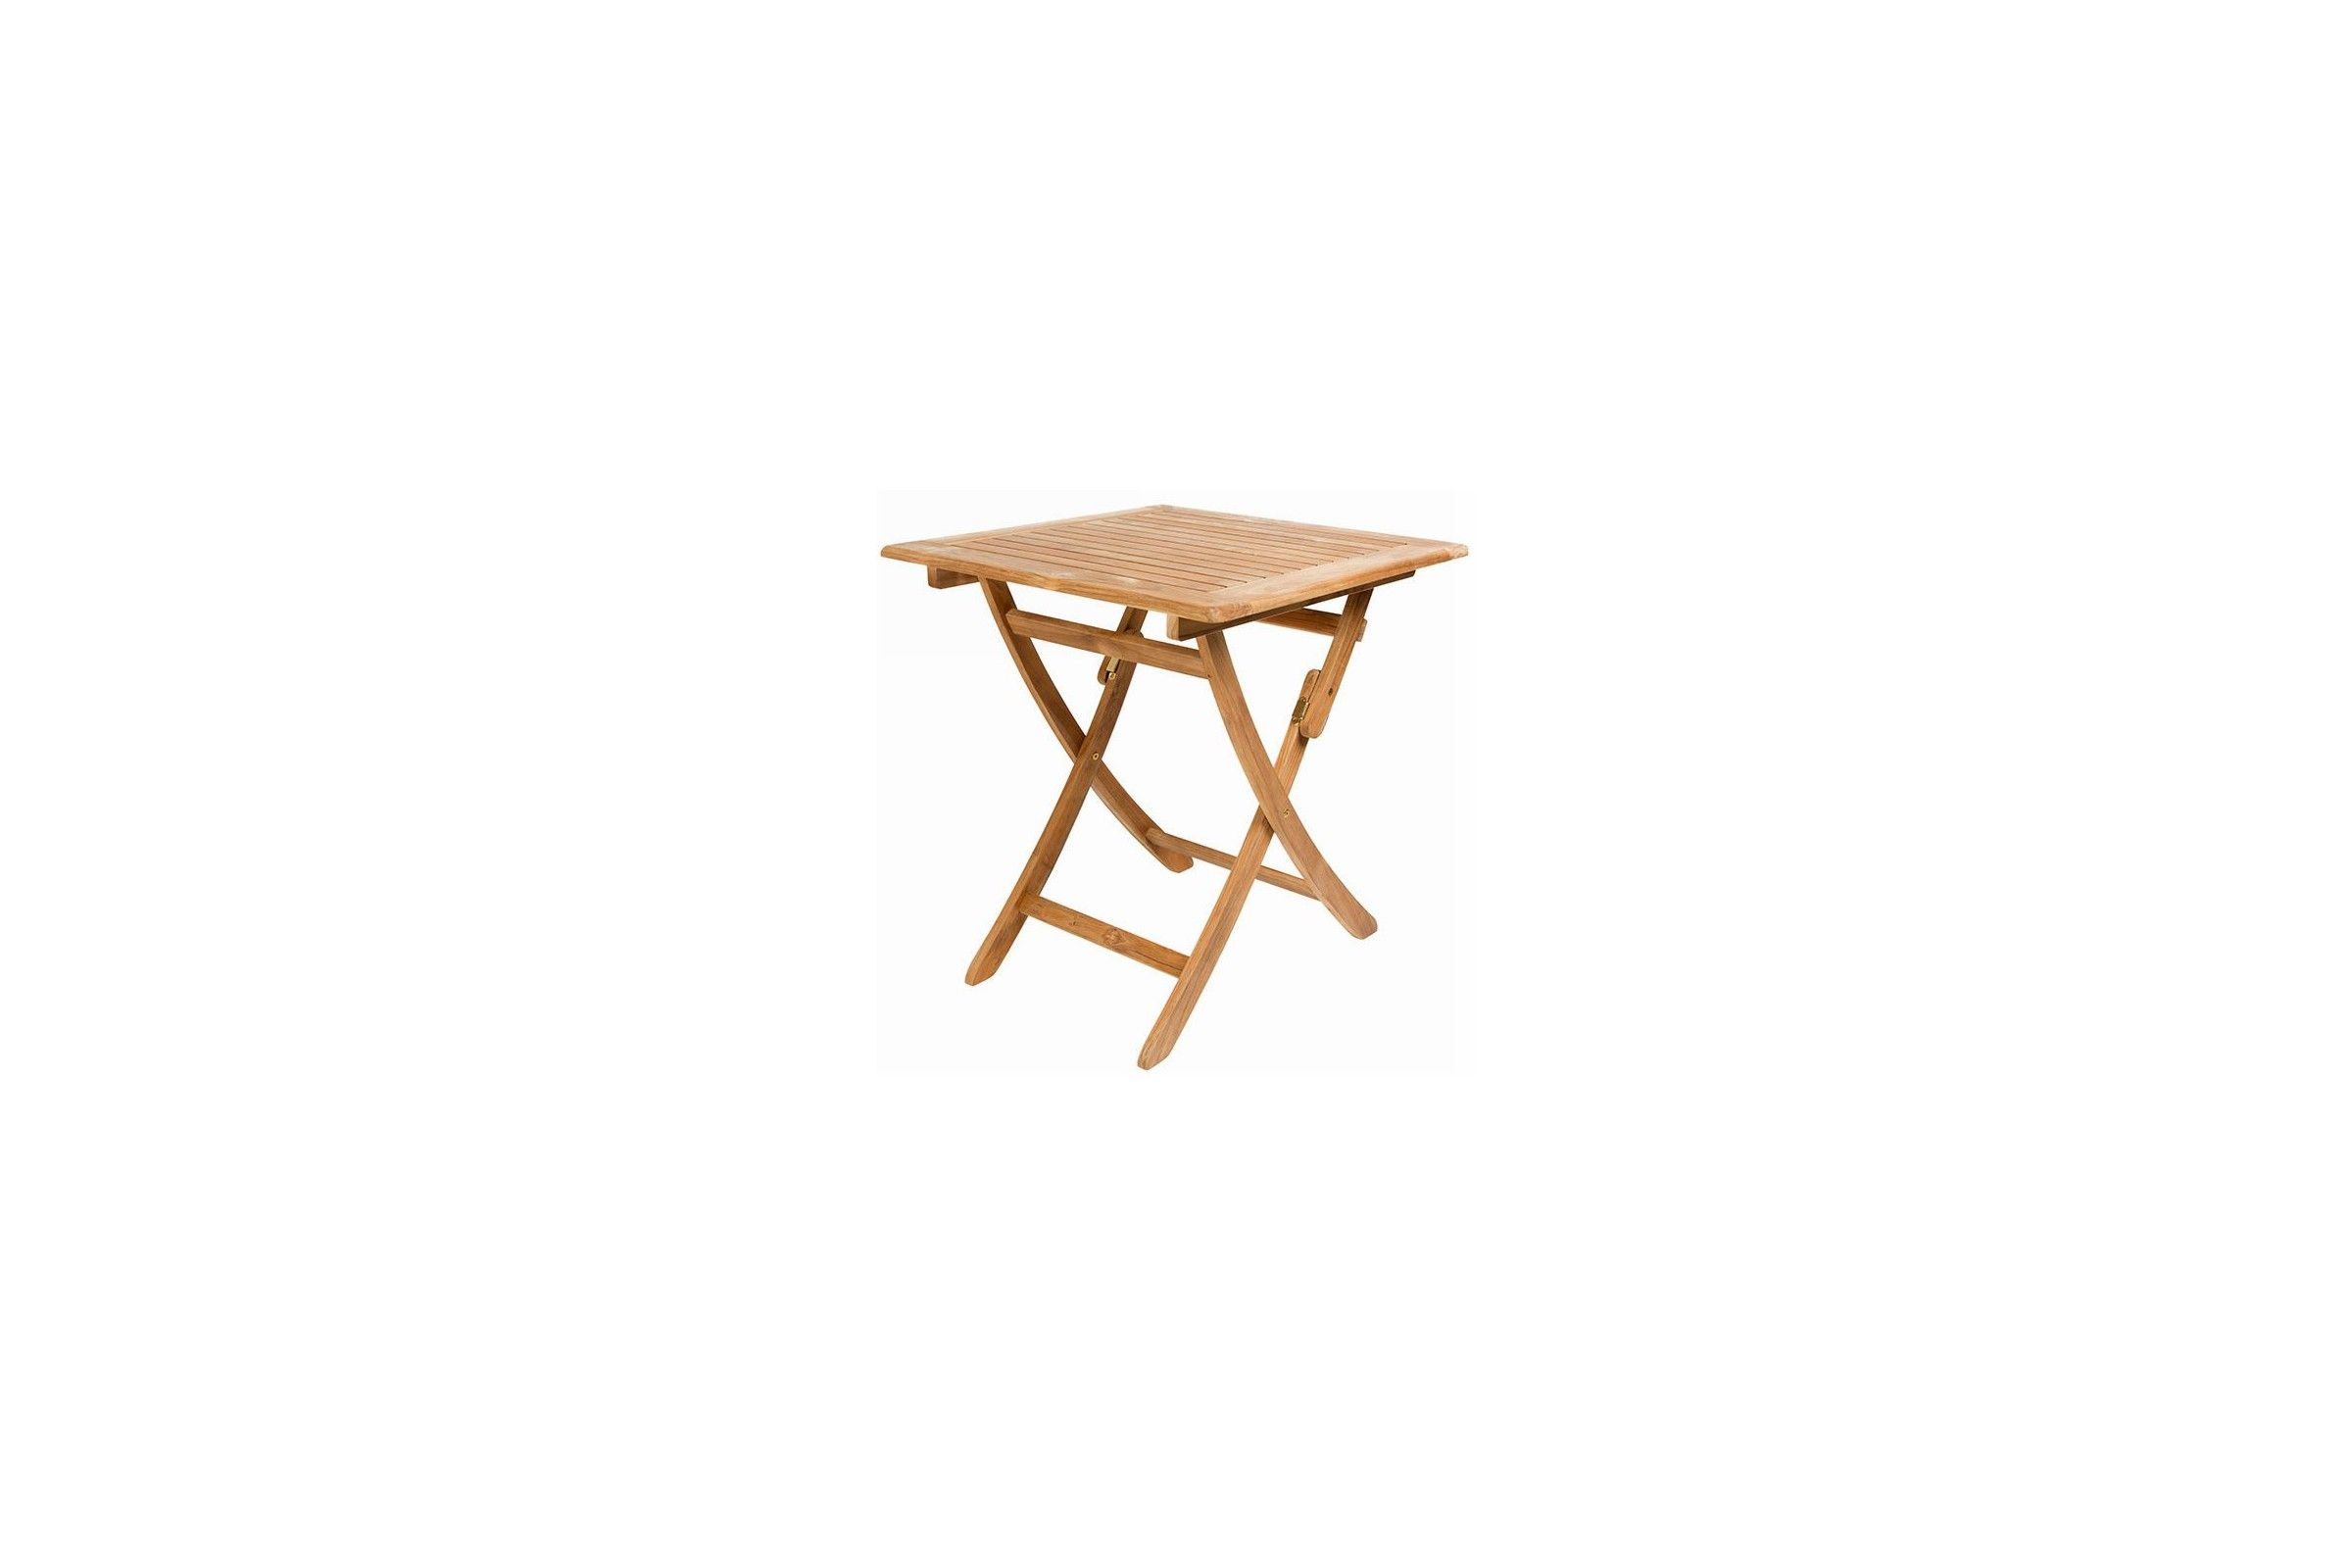 Awesome table de jardin pliante en teck images awesome - Table jardin bois pliante ...